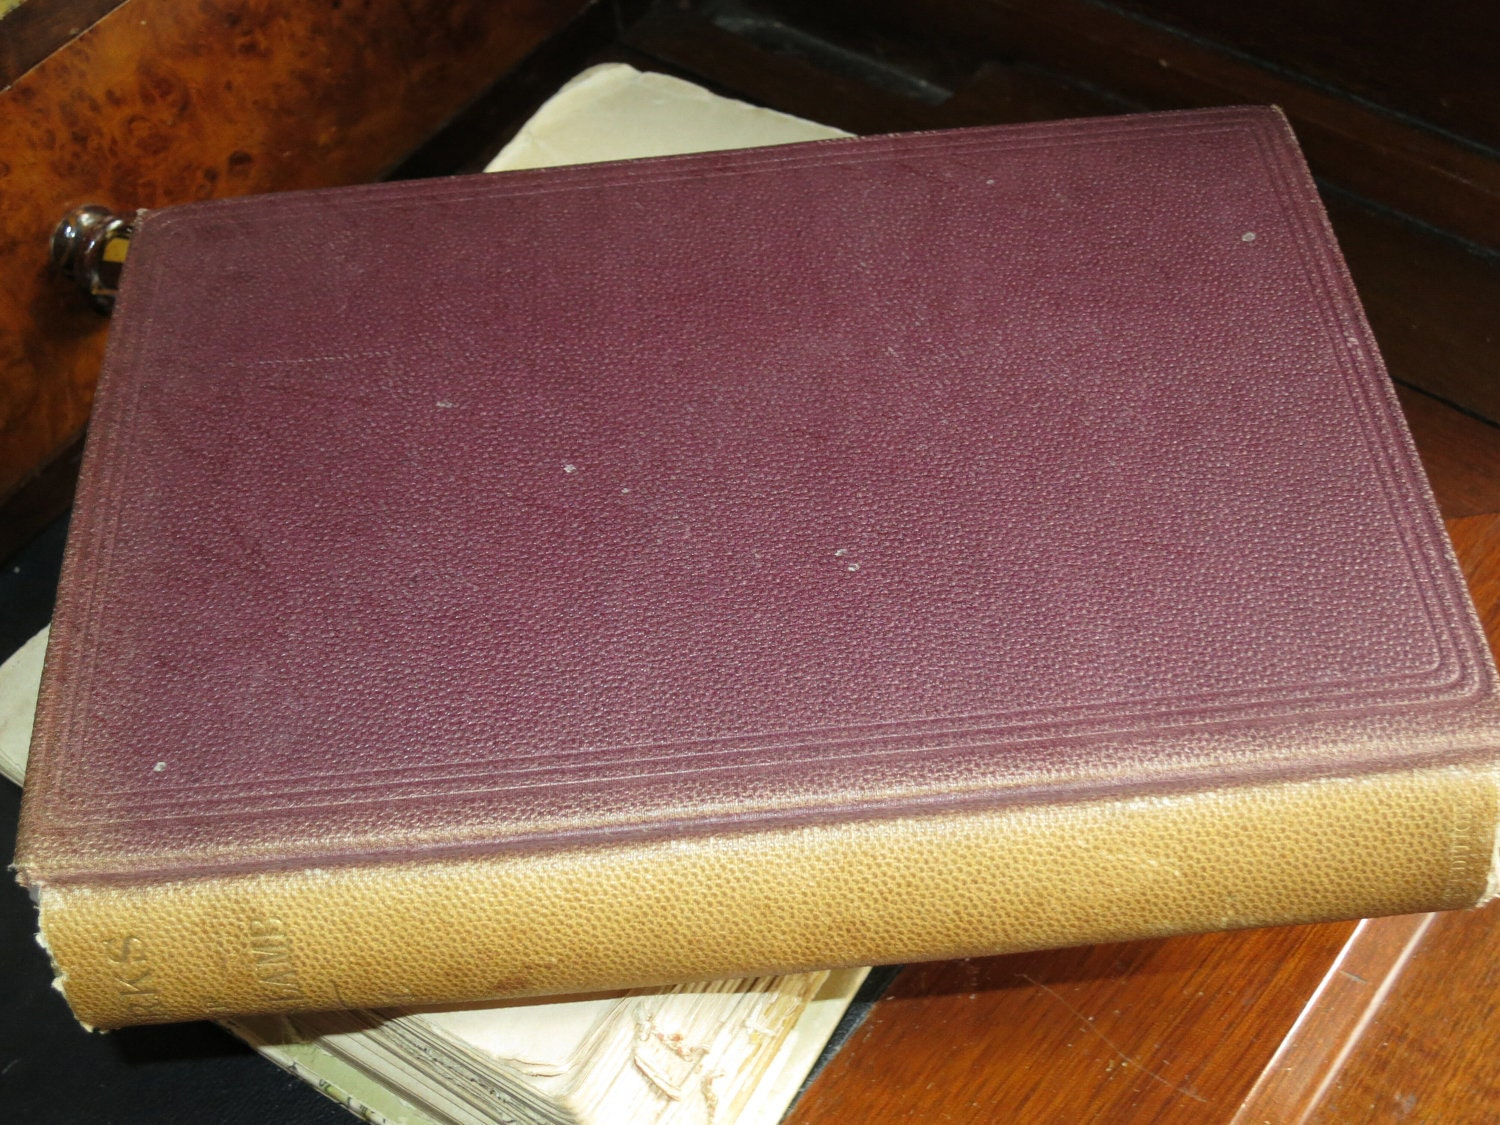 charles lamb 1875 works of charles lamb book